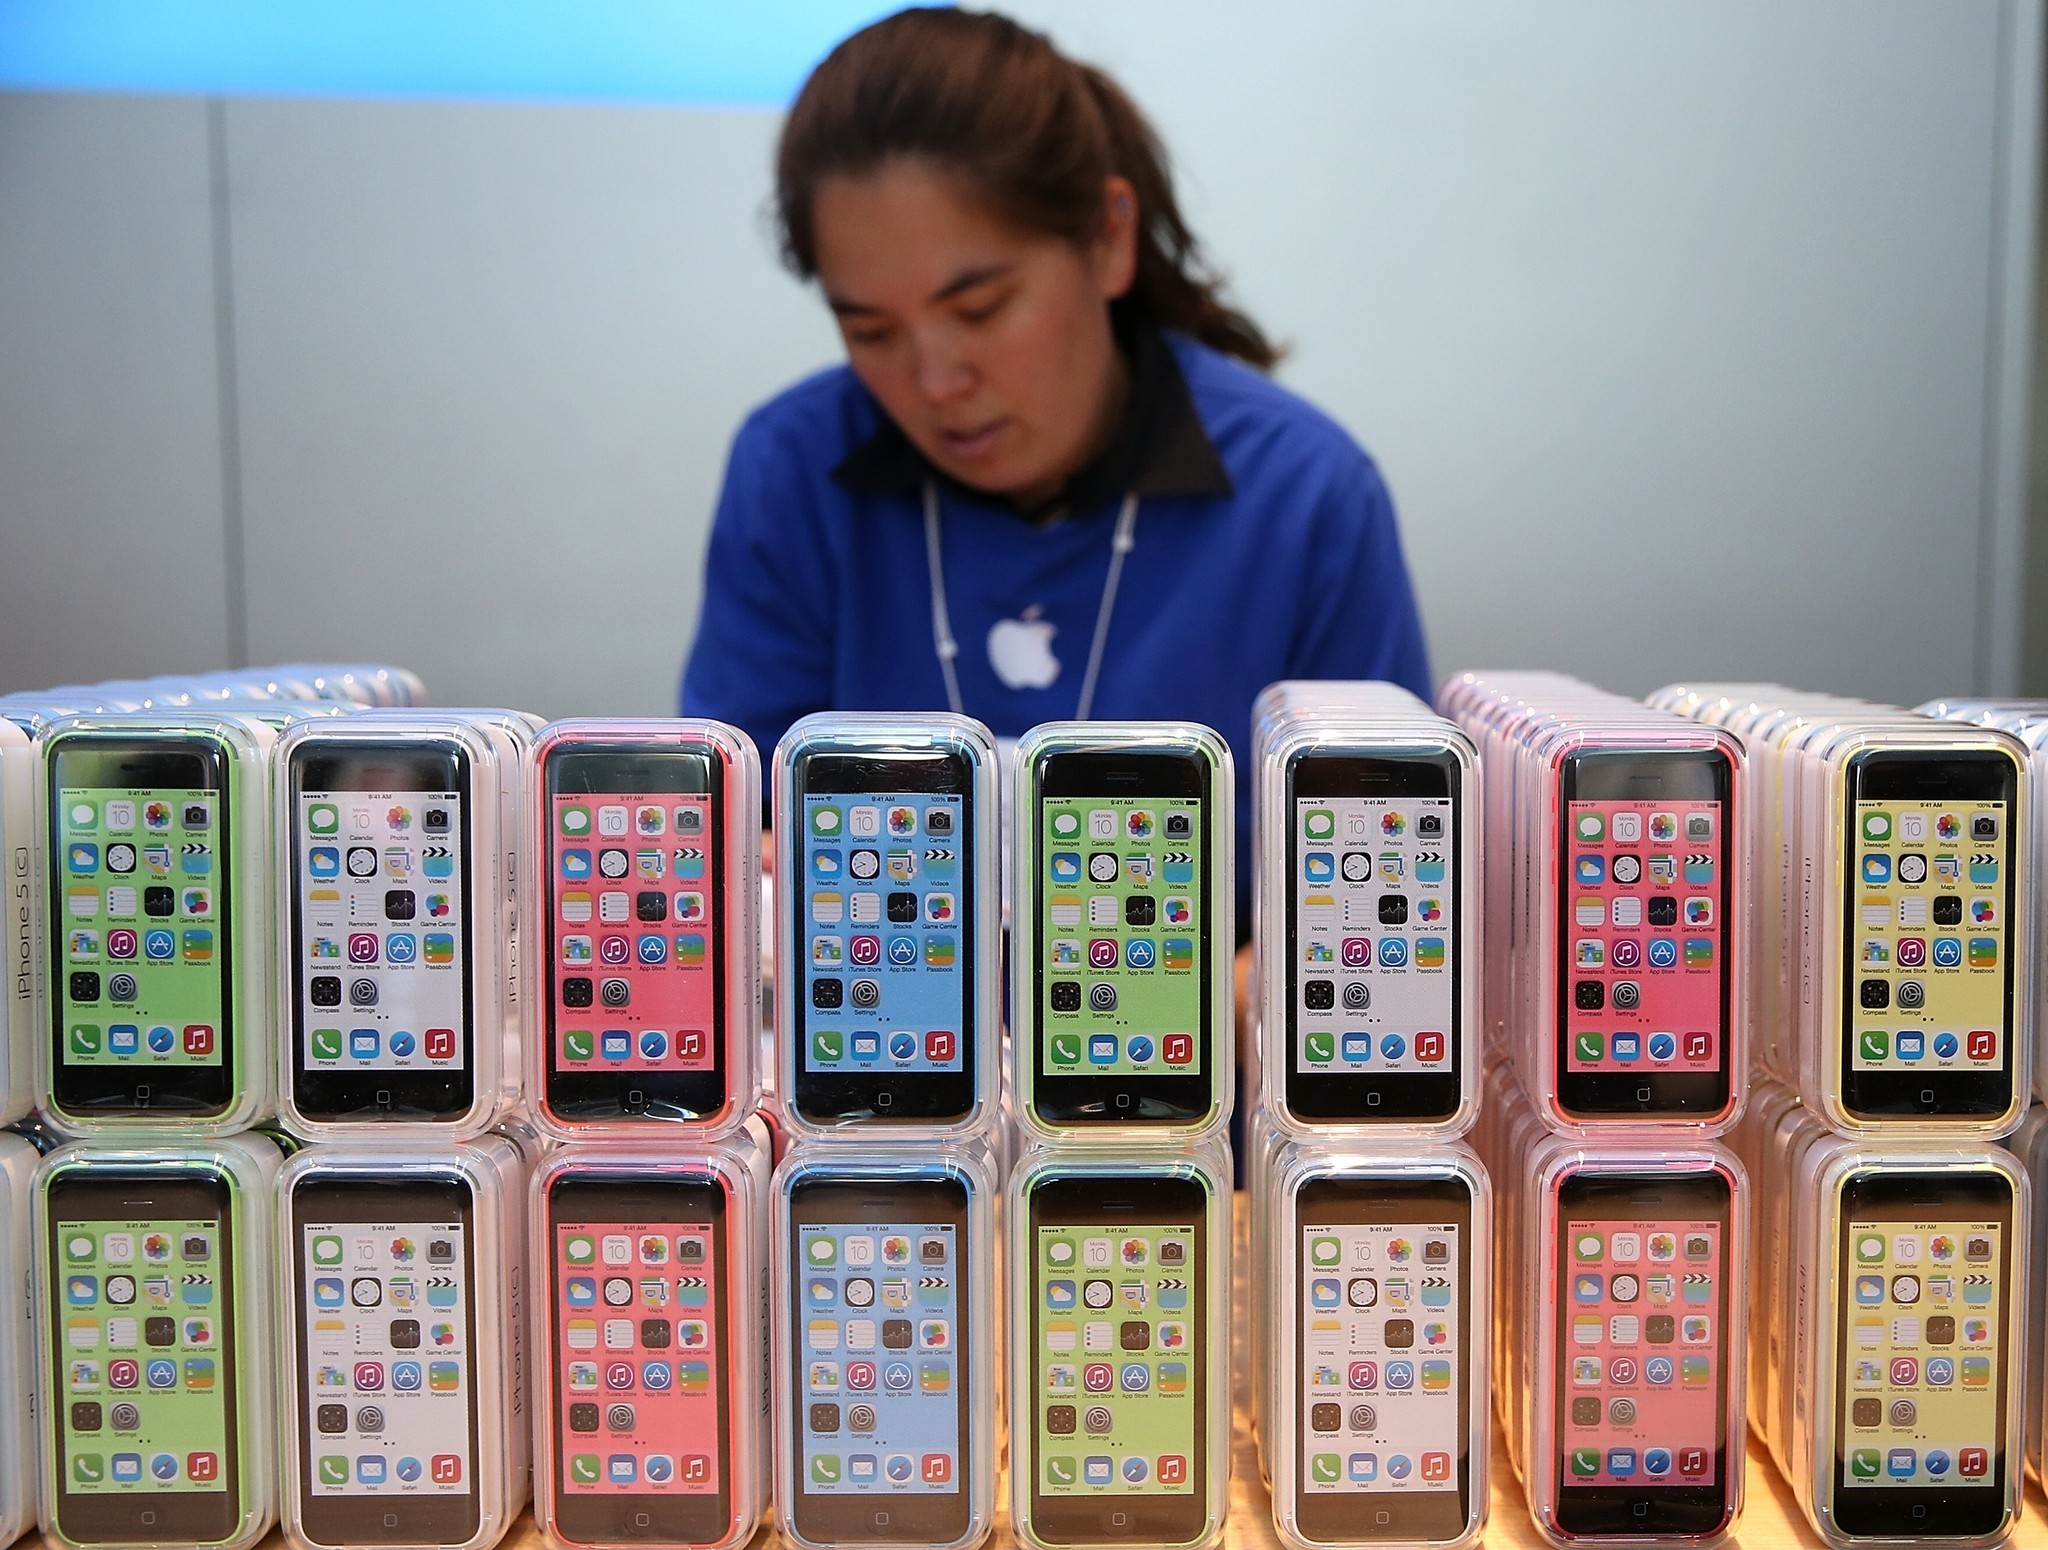 Apple third-quarter revenue growth driven by iPhone and Mac sales